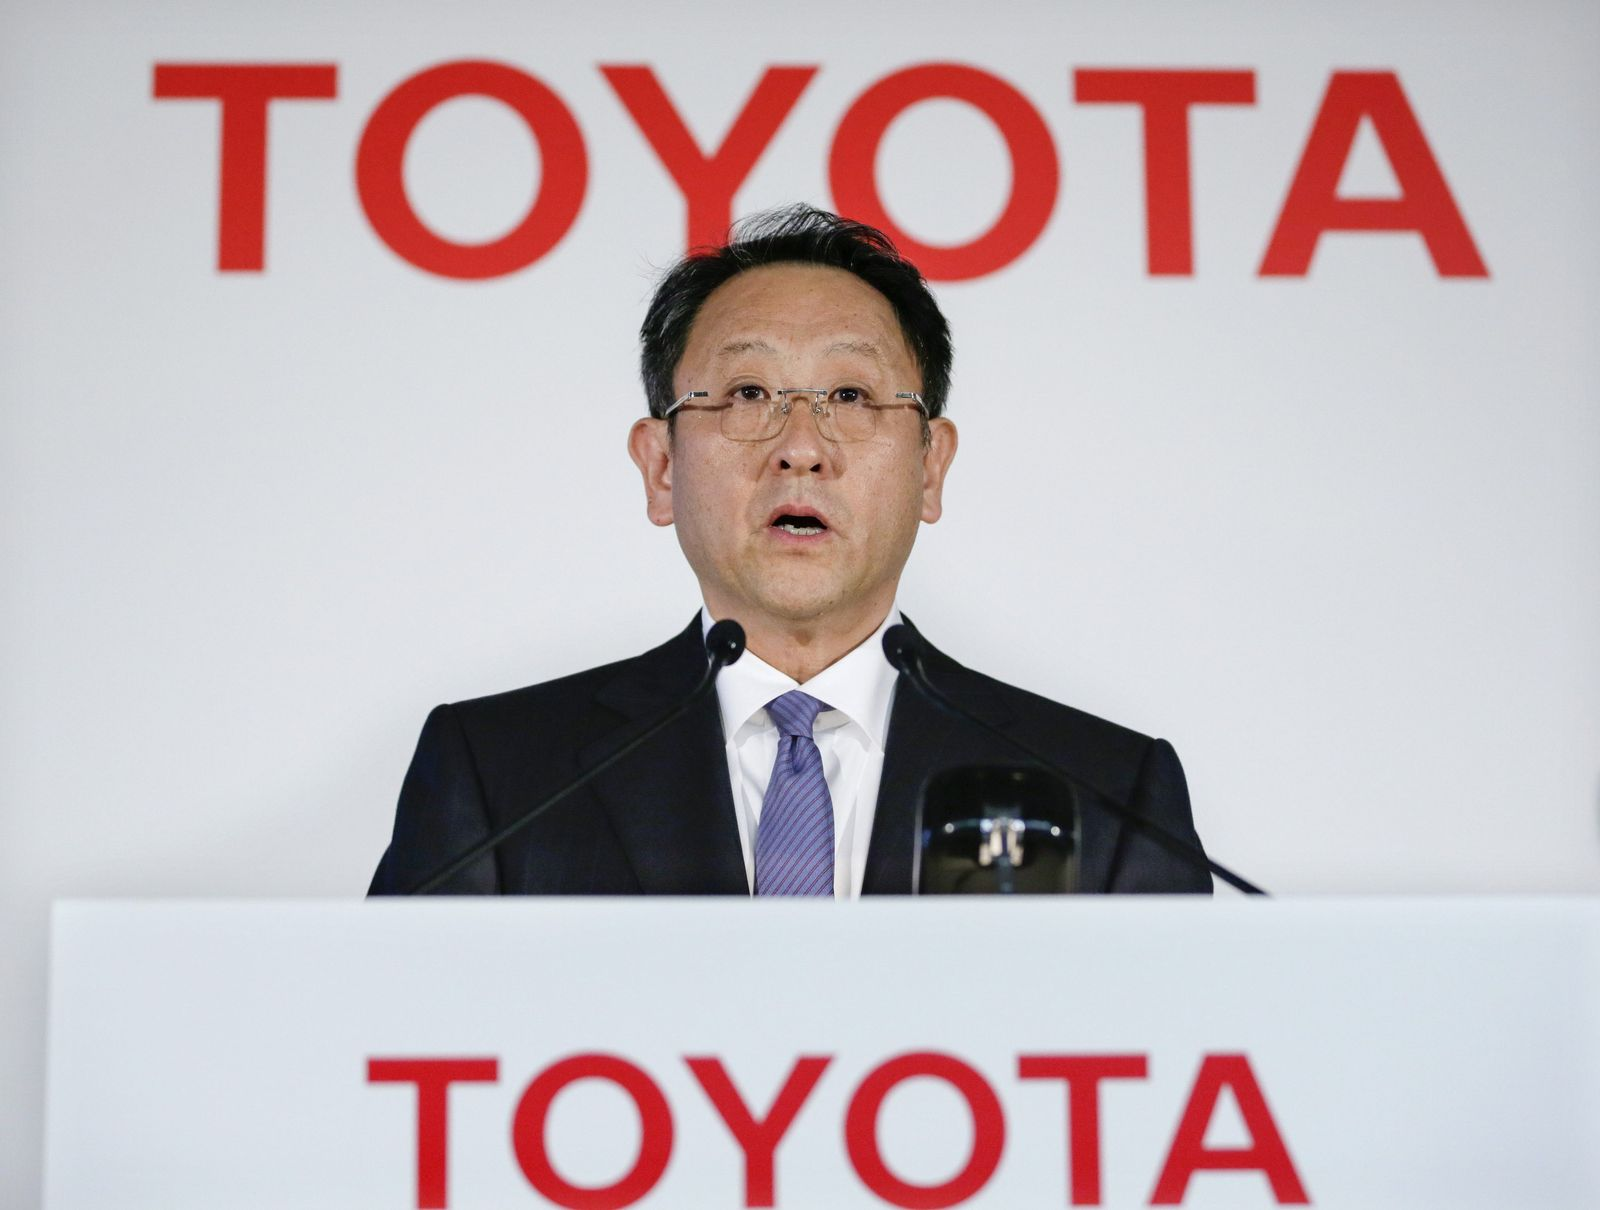 Toyota Motor Corp announces 2013 fiscal year earnings